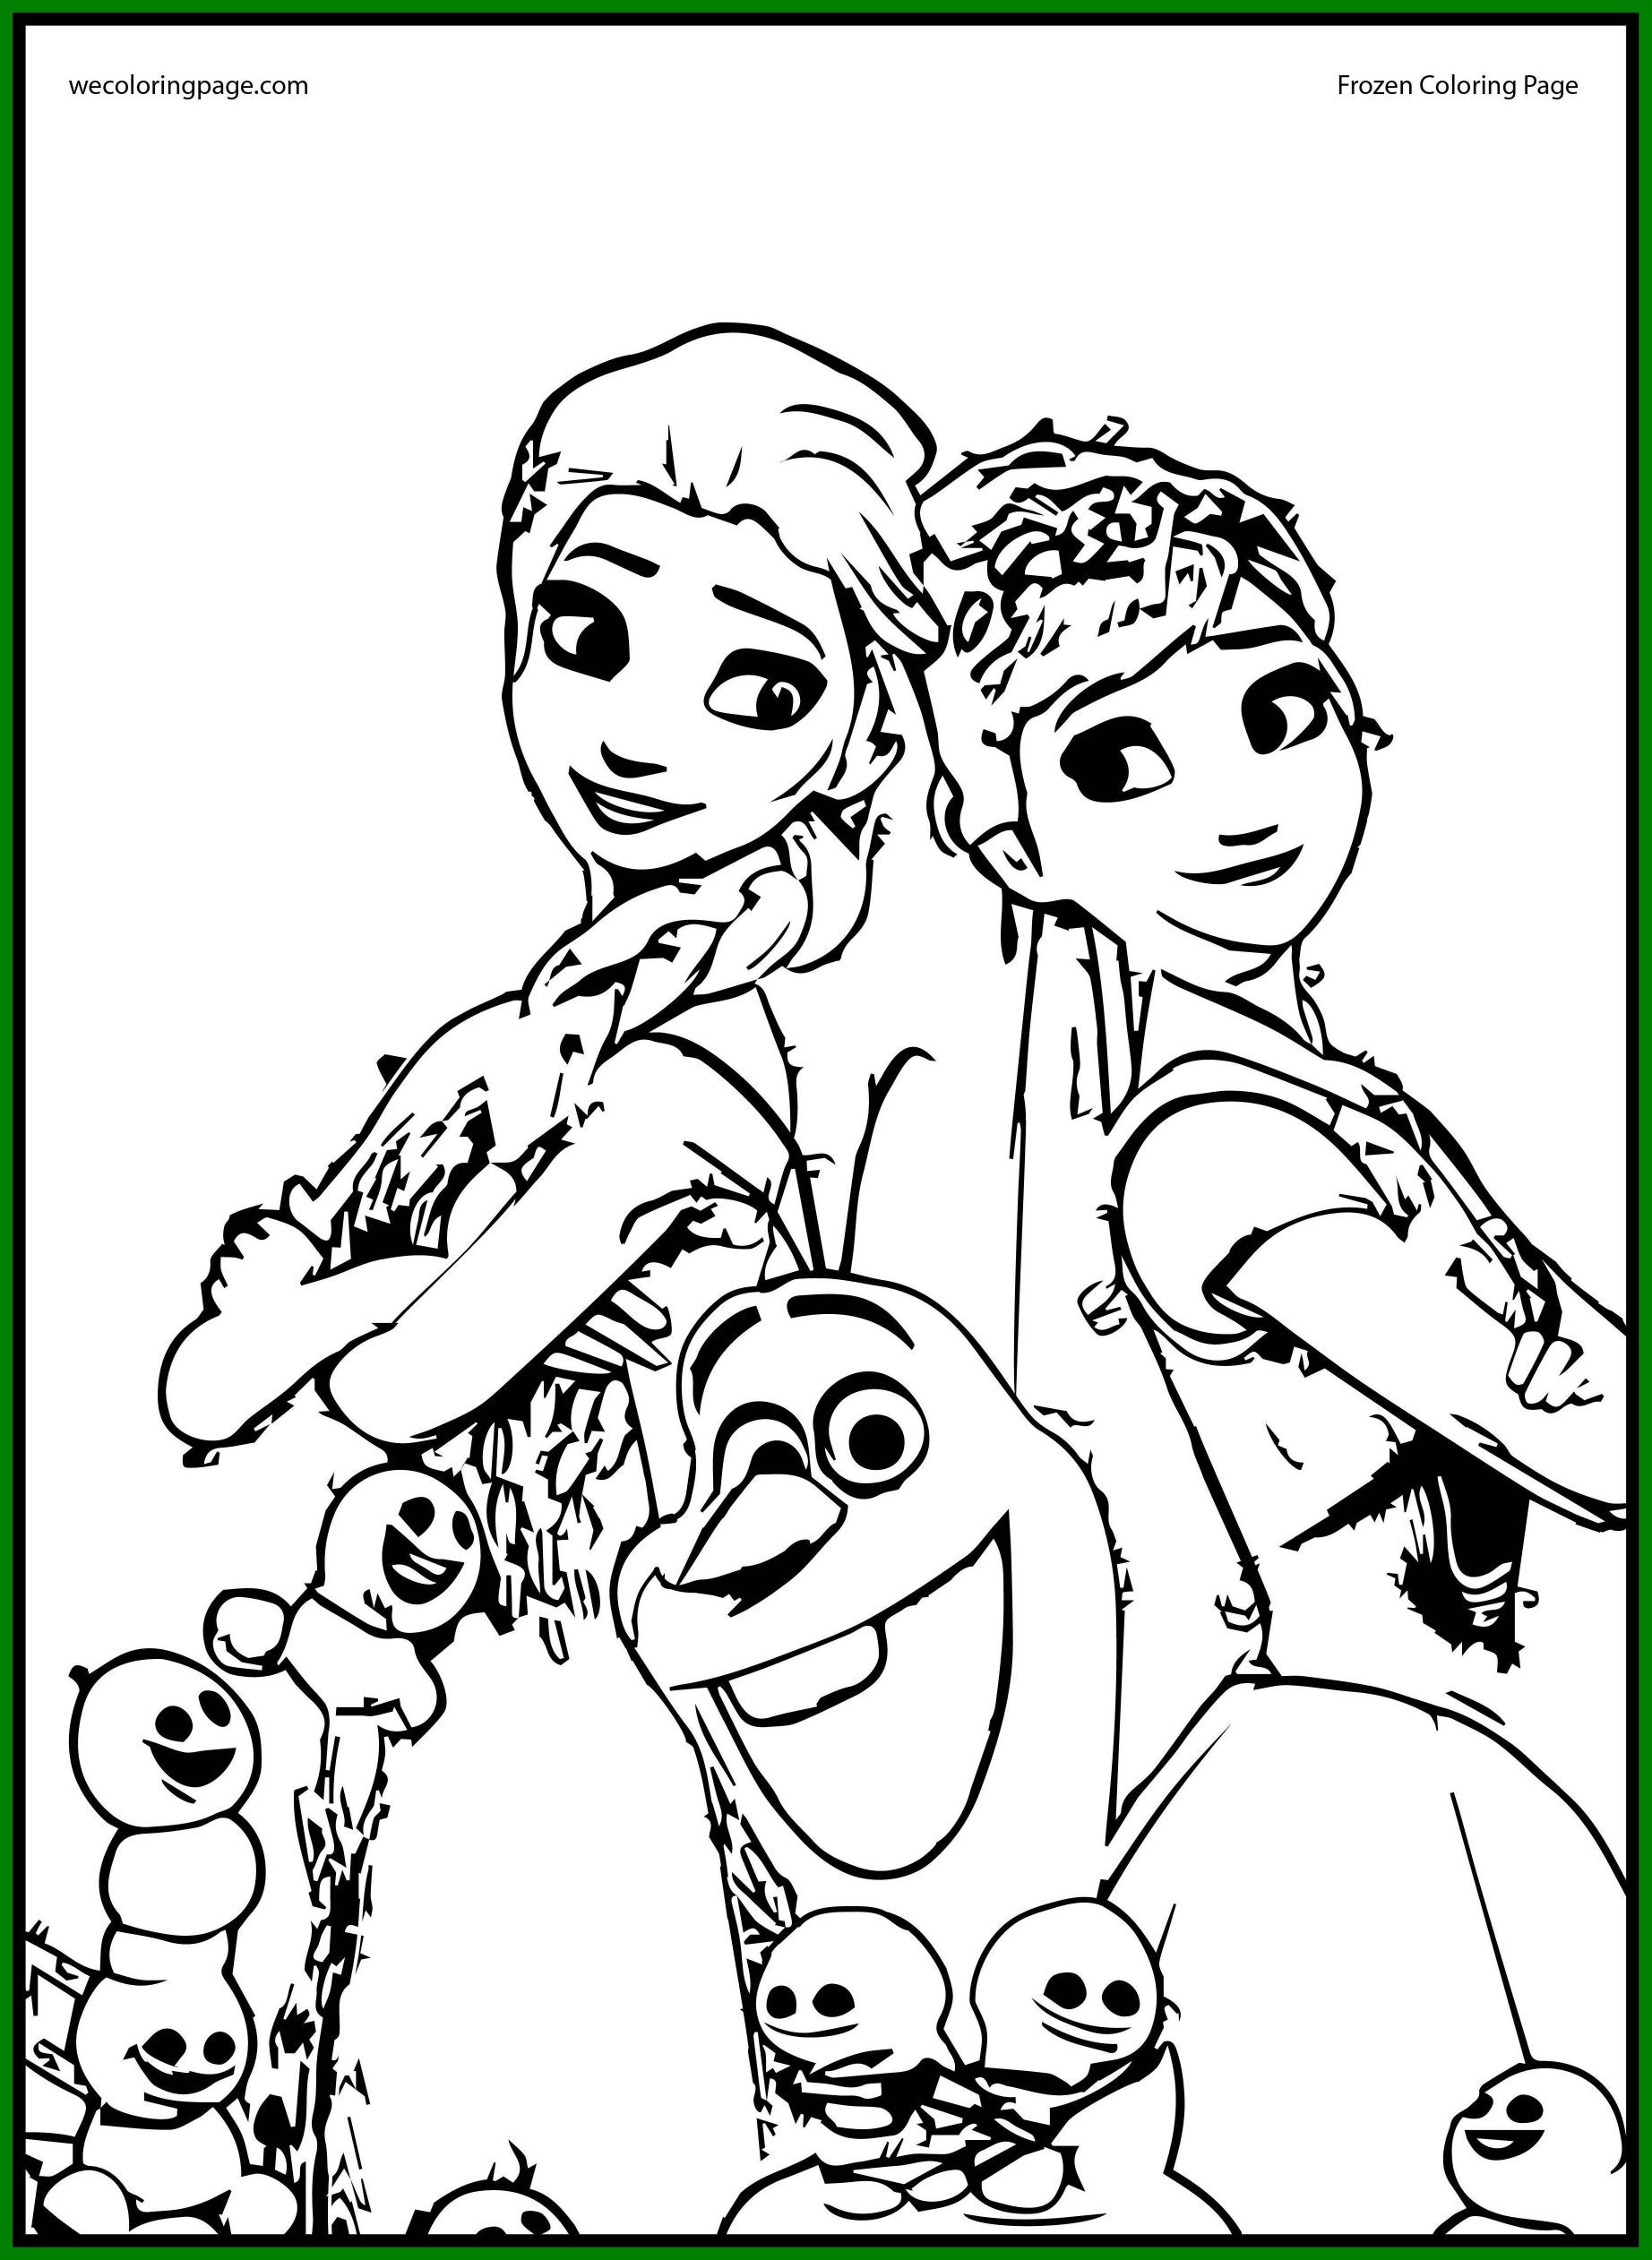 Frozen Happy Birthday Coloring Pages At Getdrawings